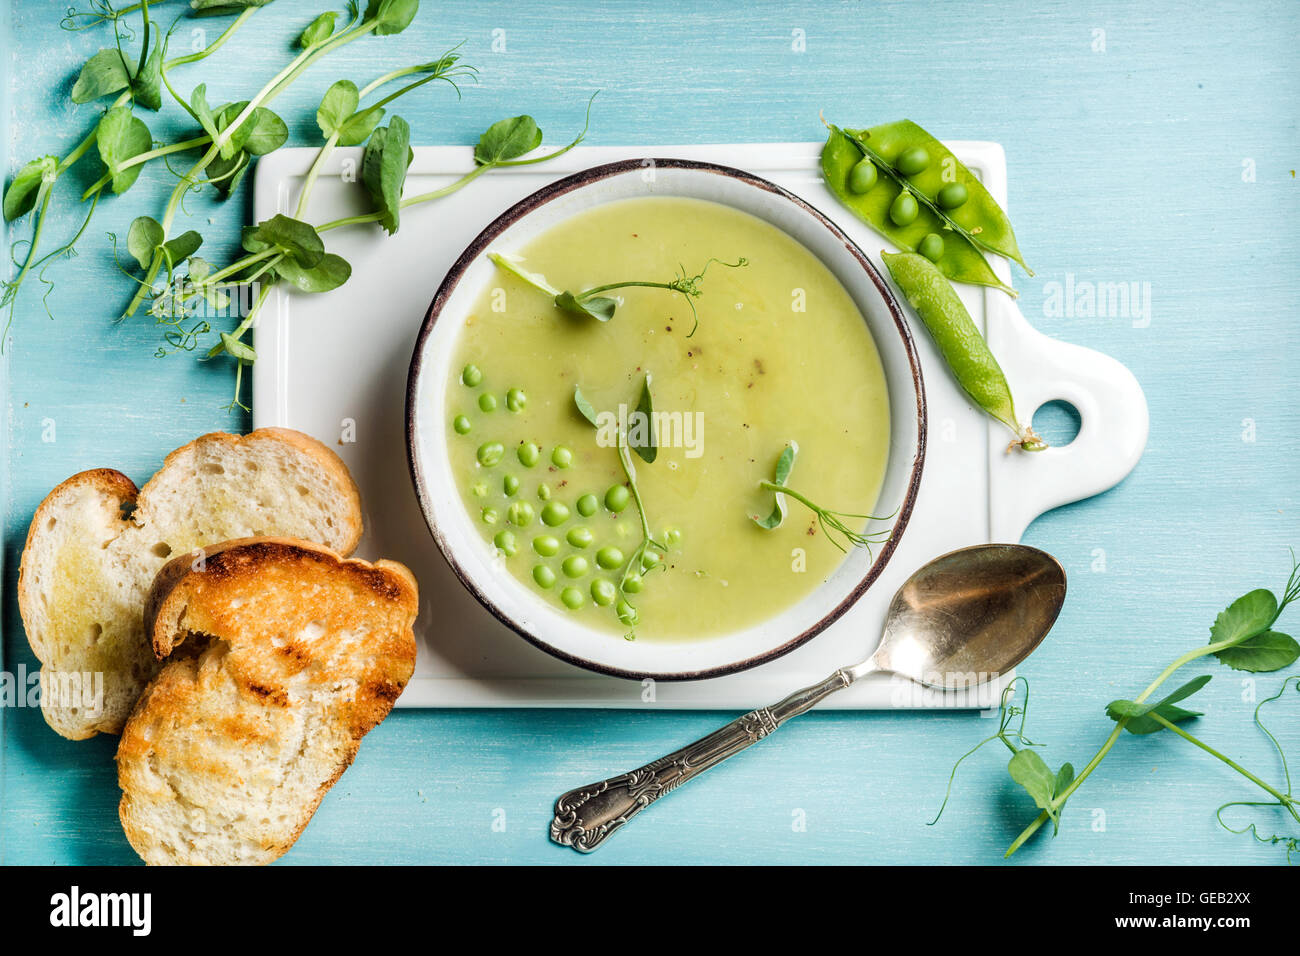 Light summer green pea cream soup in bowl with sprouts, bread toasts and spices - Stock Image